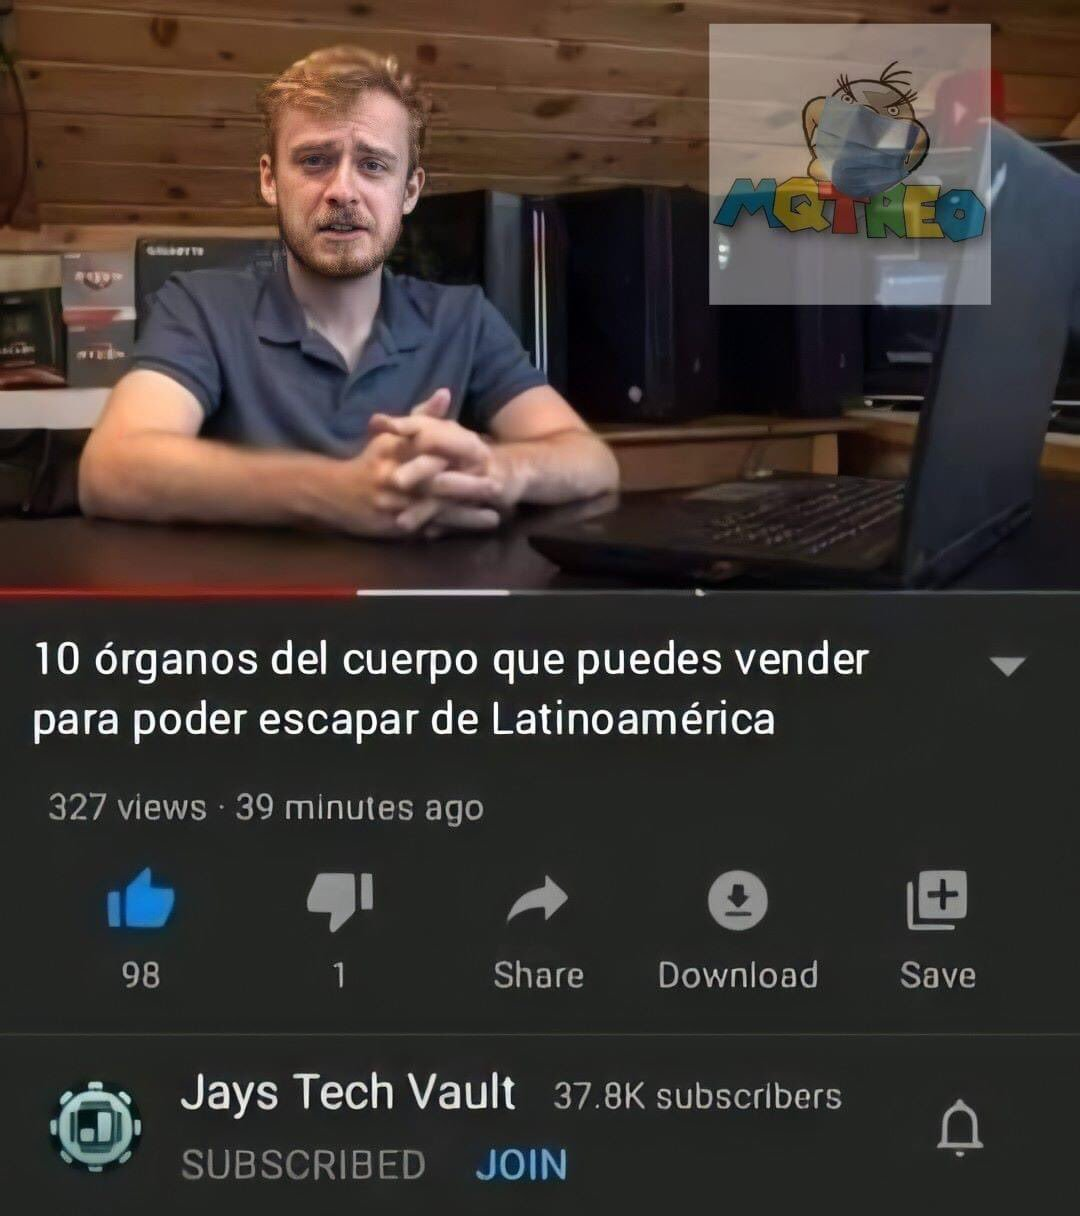 Caray, eso sí me interesa - meme